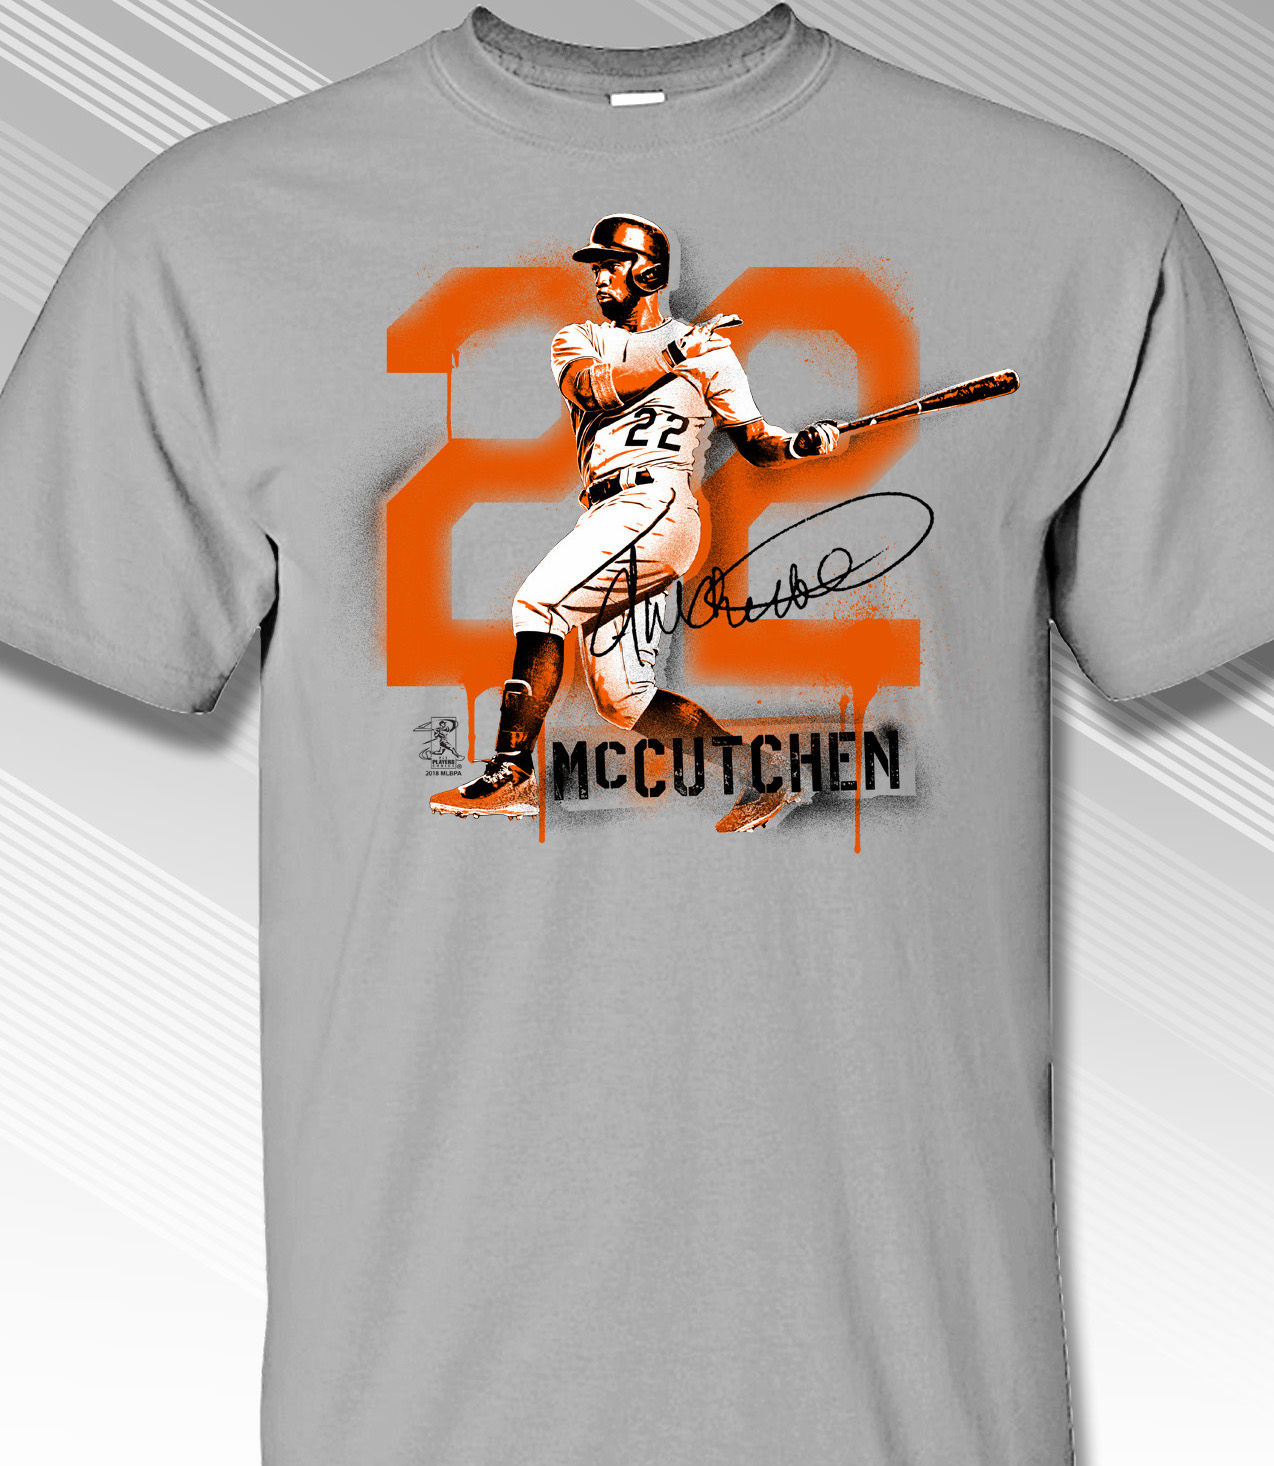 Andrew McCutchen San Francisco Graffiti T-Shirt<br>Short or Long Sleeve<br>Youth Med to Adult 4X